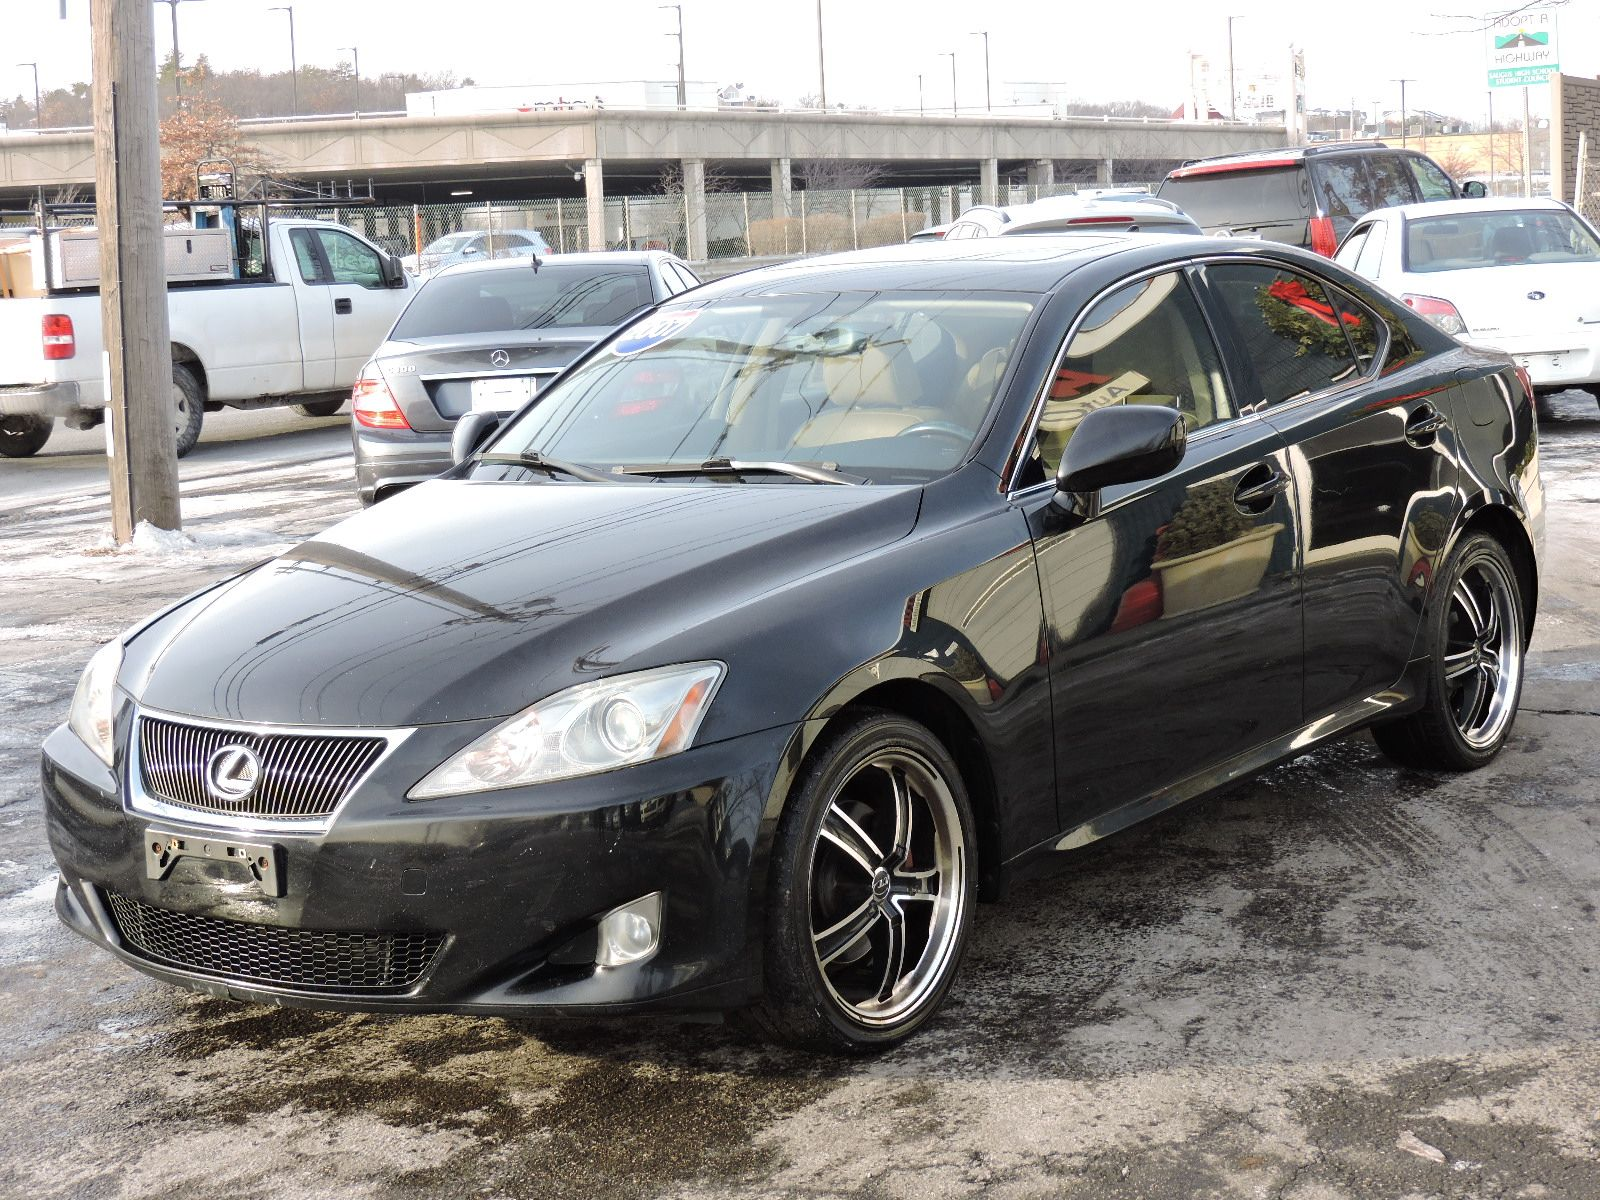 2007 Lexus IS 250 - All Wheel Drive - Navigation